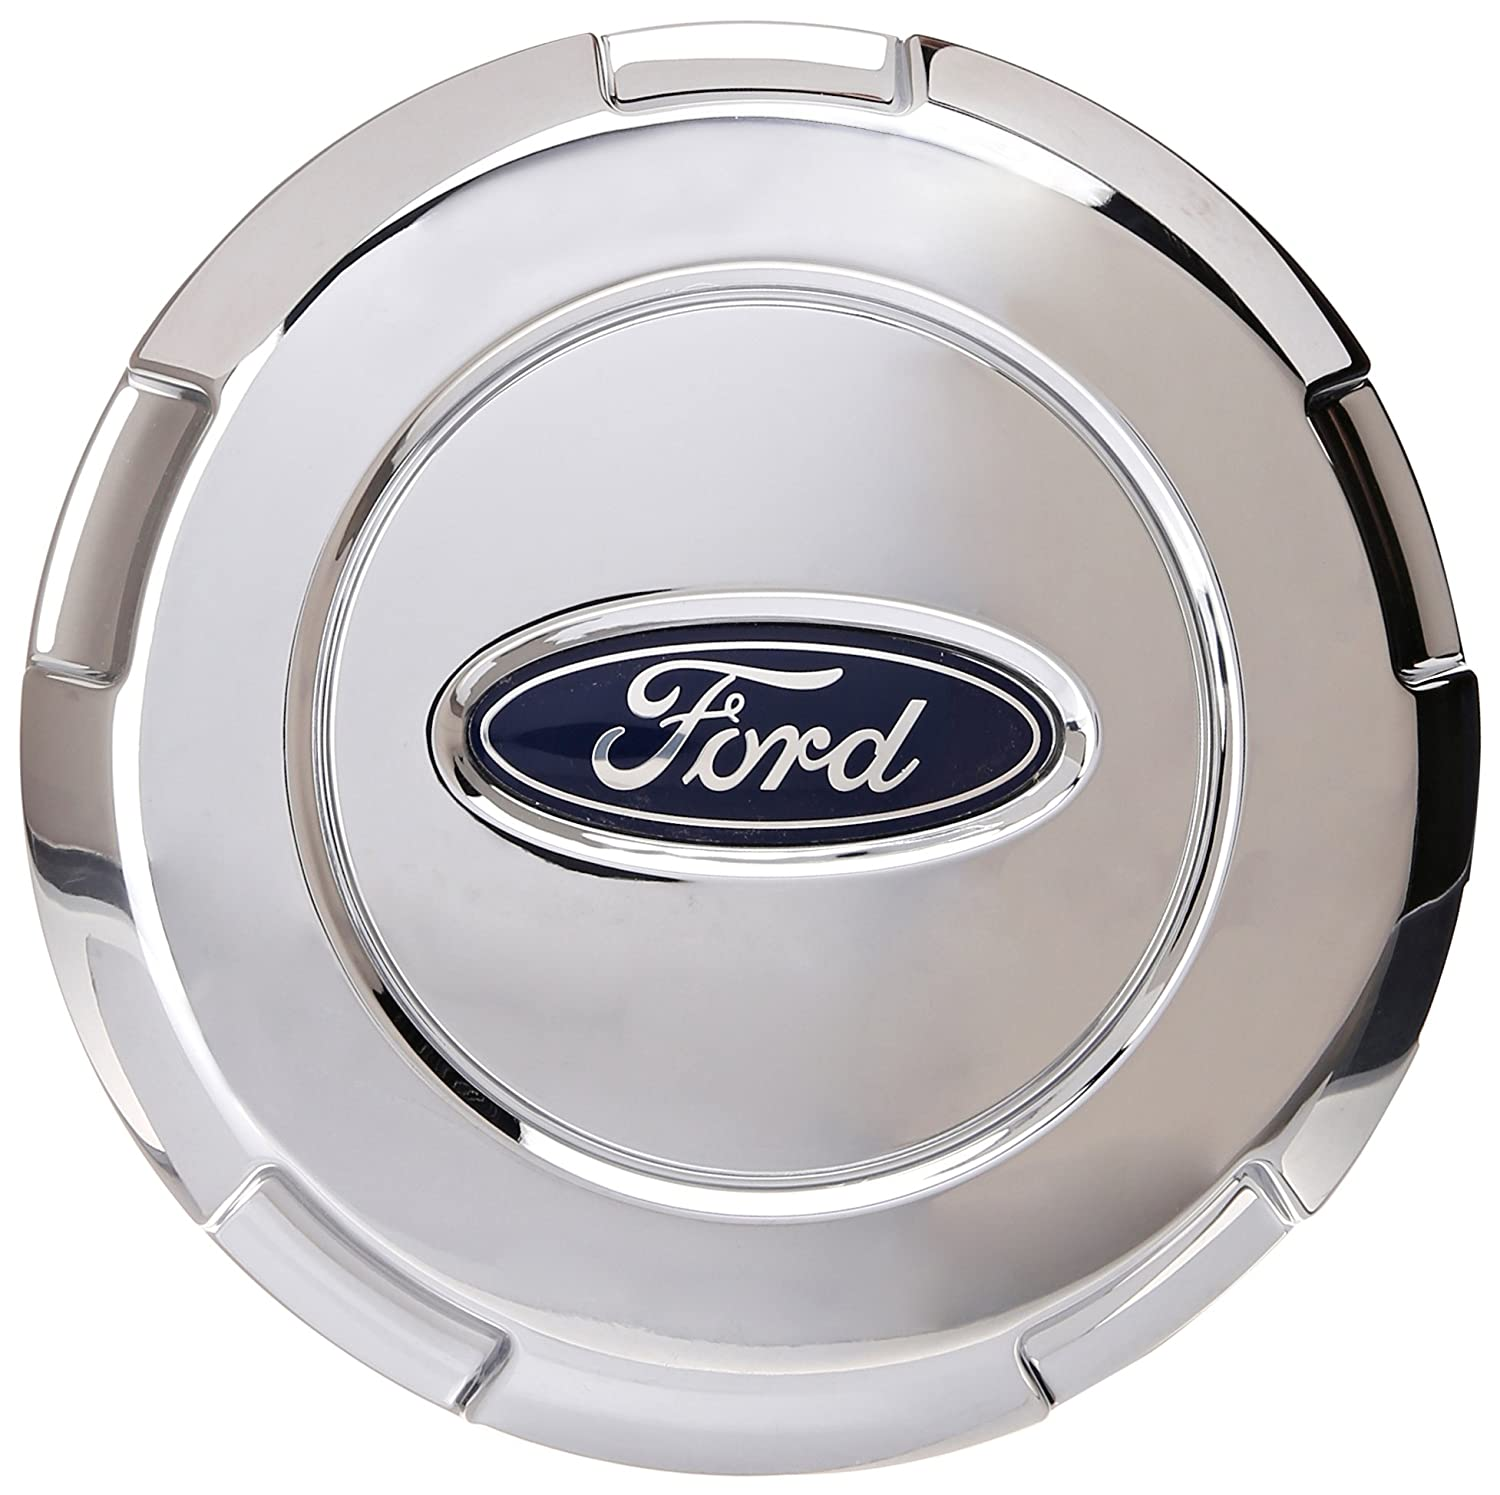 Genuine Ford 4L3Z-1130-AB Center Cap